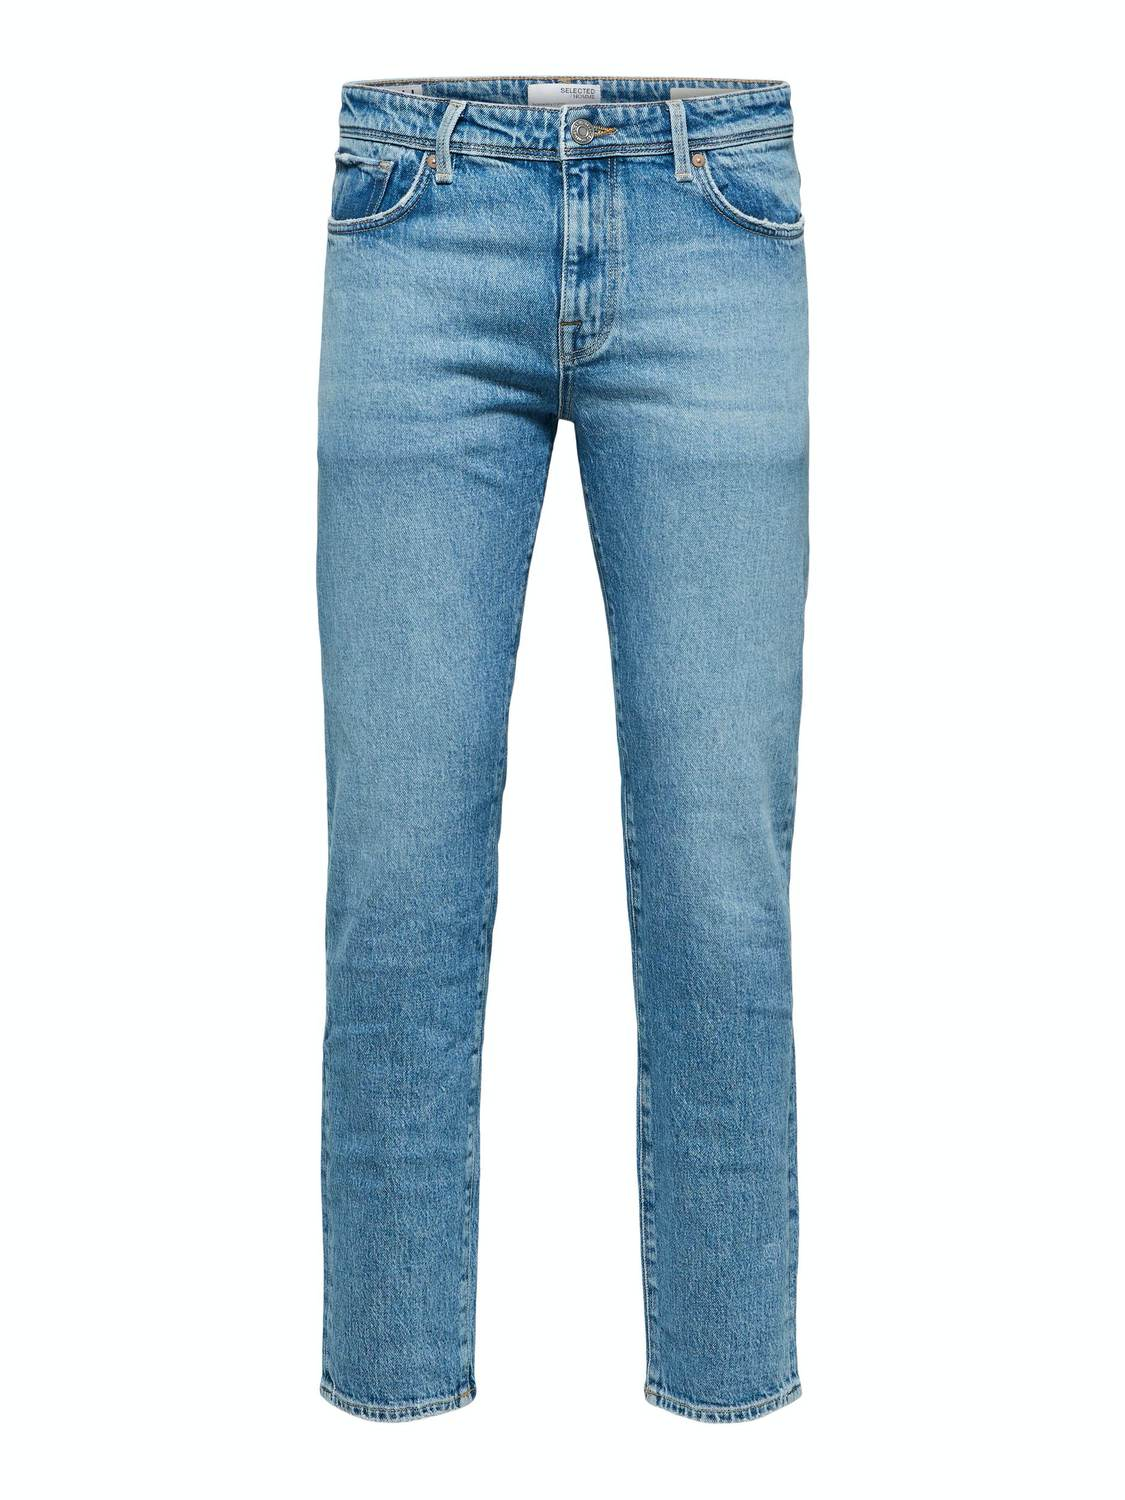 Selected Jeans - Slim Leon 3052 LT Blue | GATE 36 Hobro